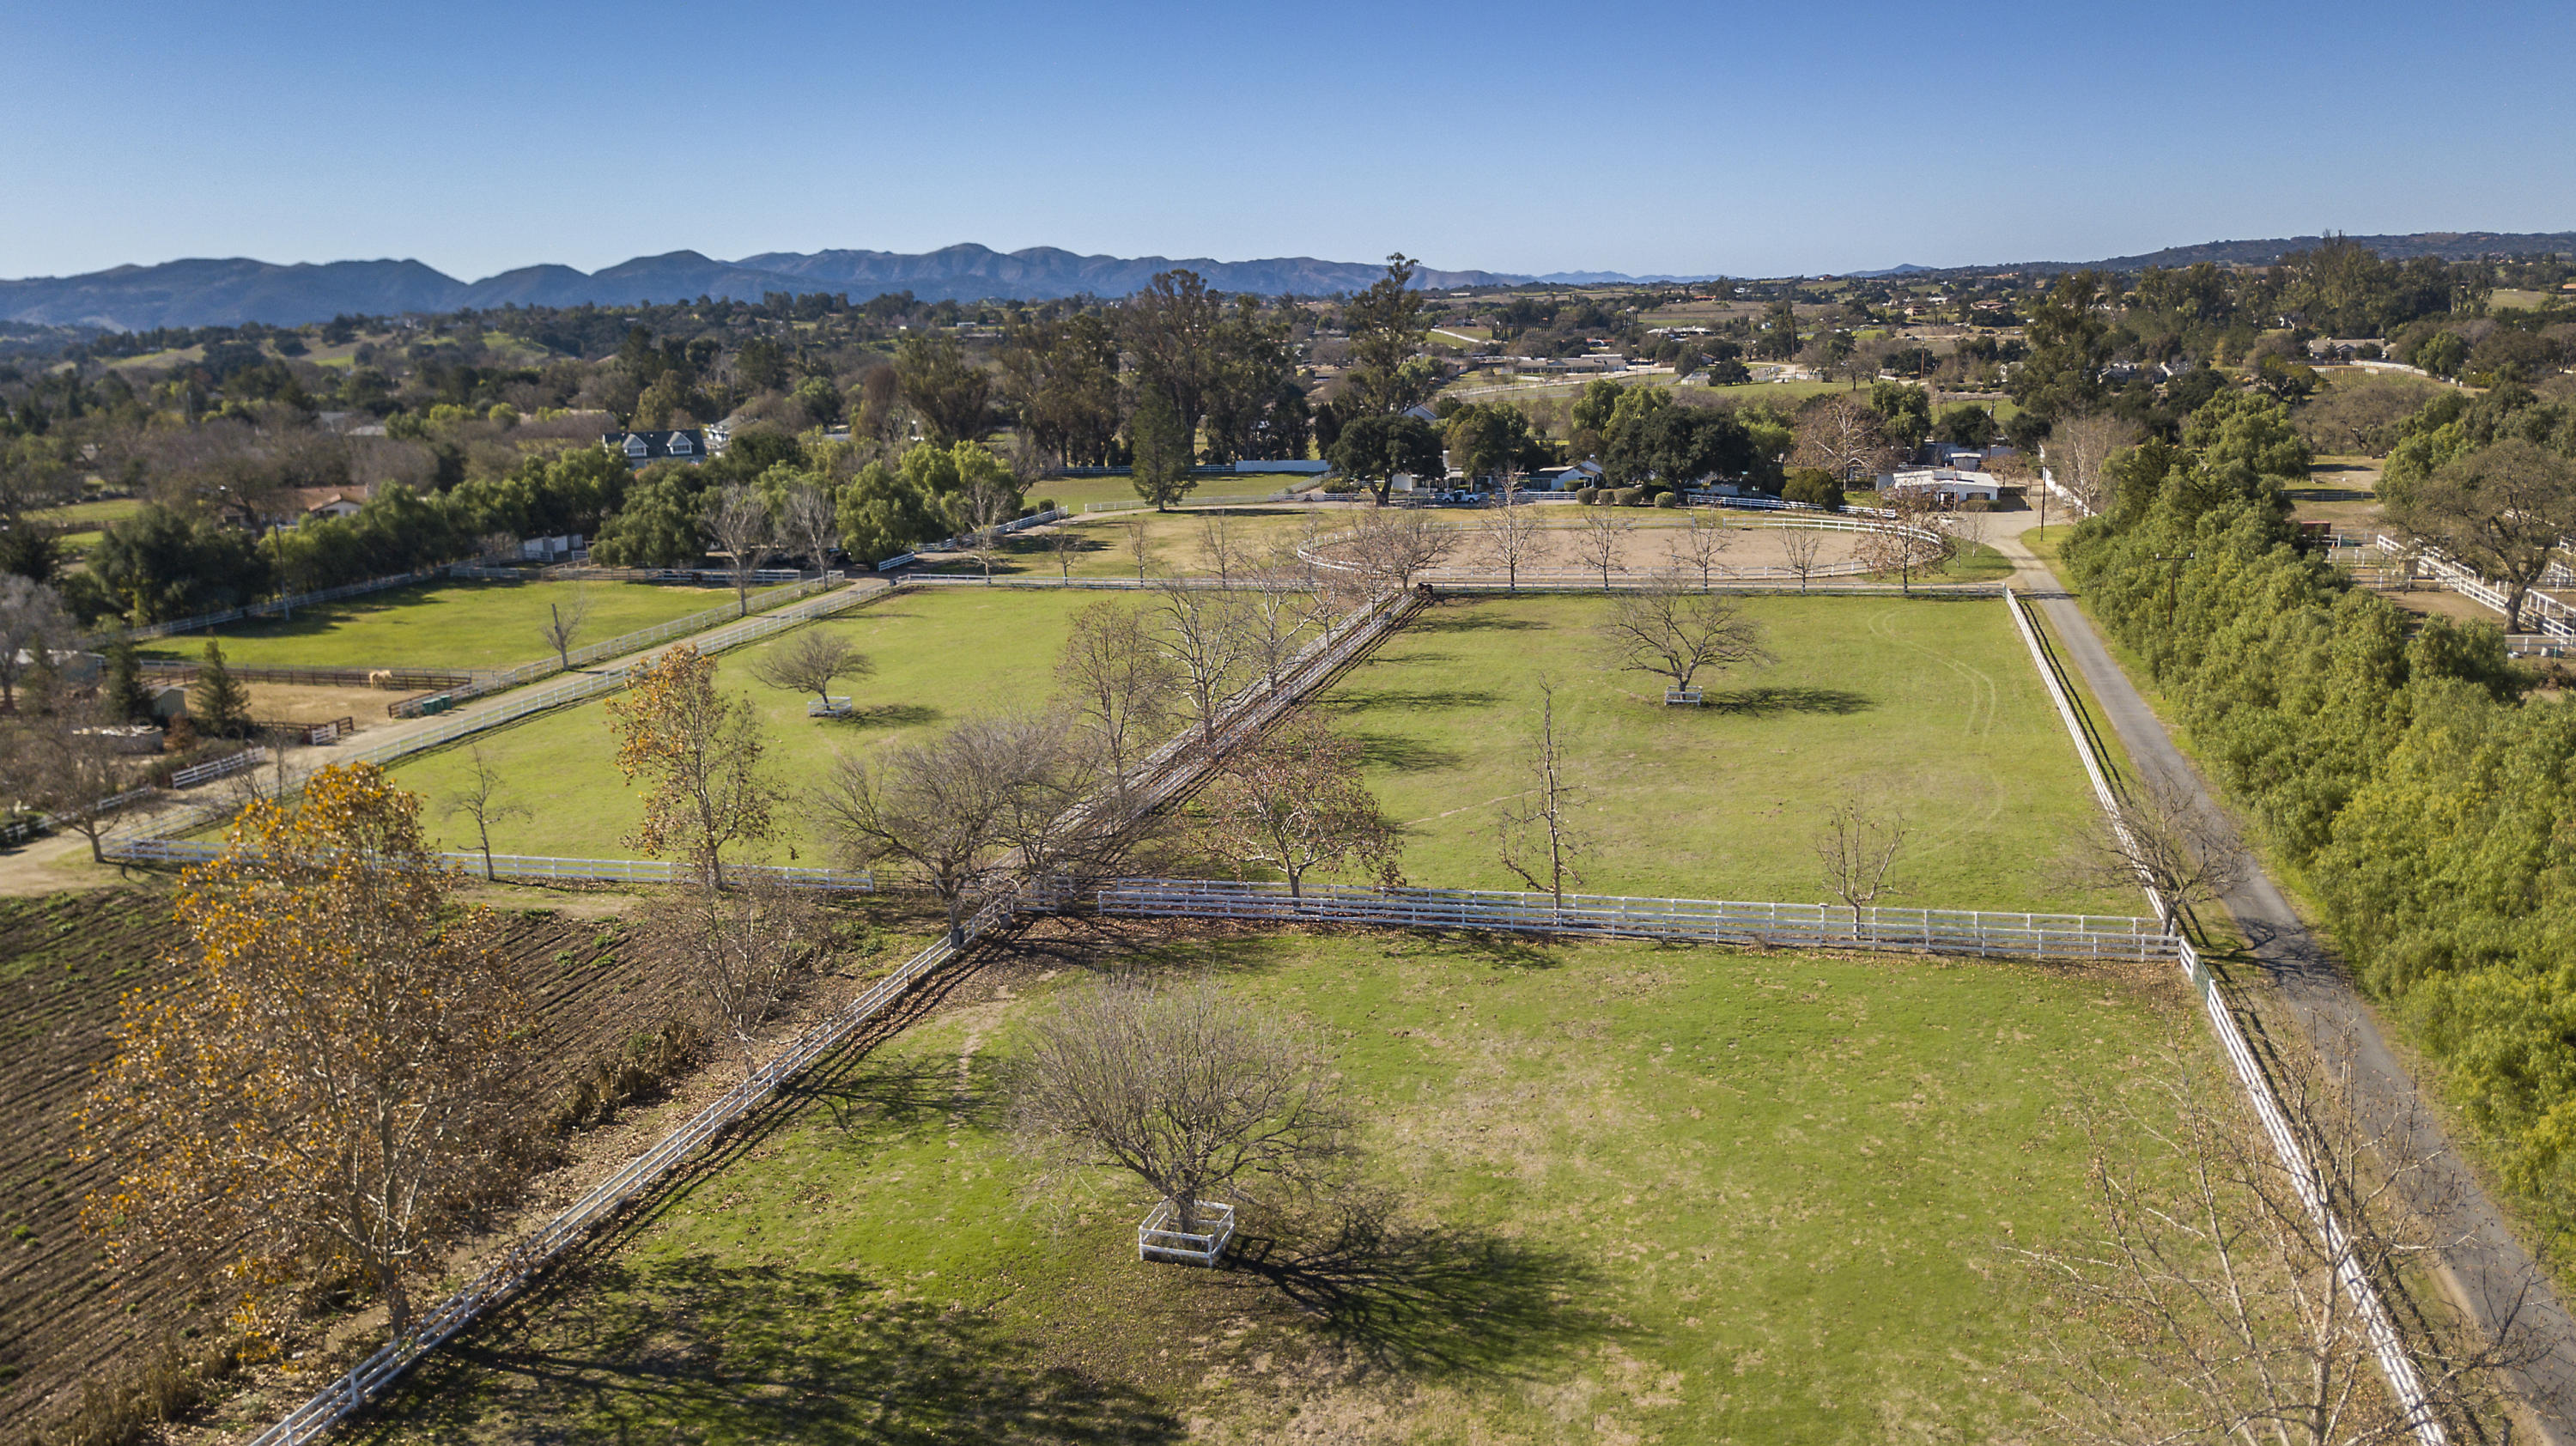 Property photo for 1575-95 Calzada Ave Santa Ynez, California 93460 - 18-257